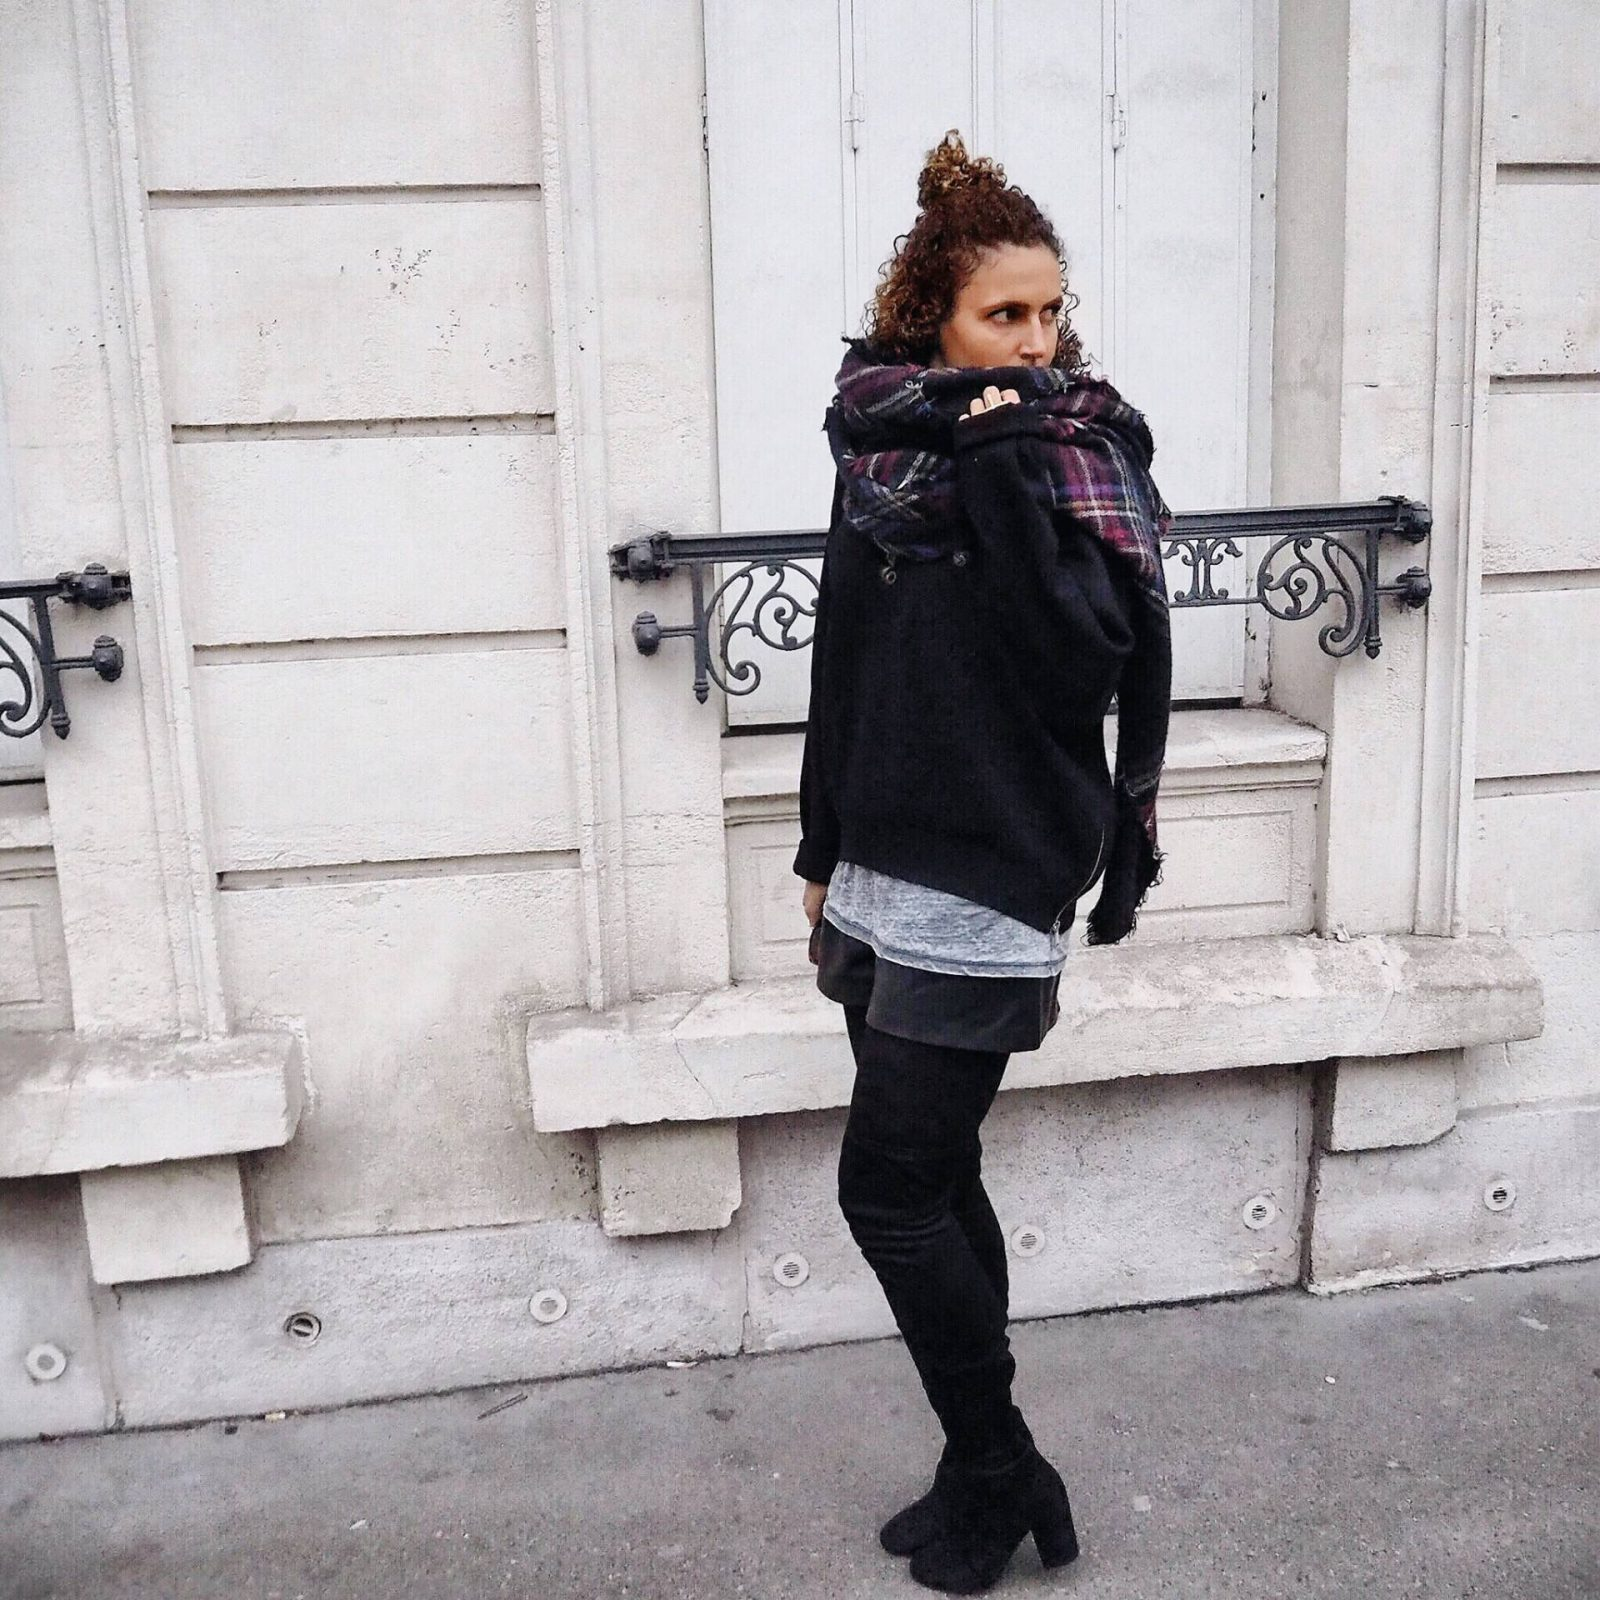 Thigh Boots in Paris